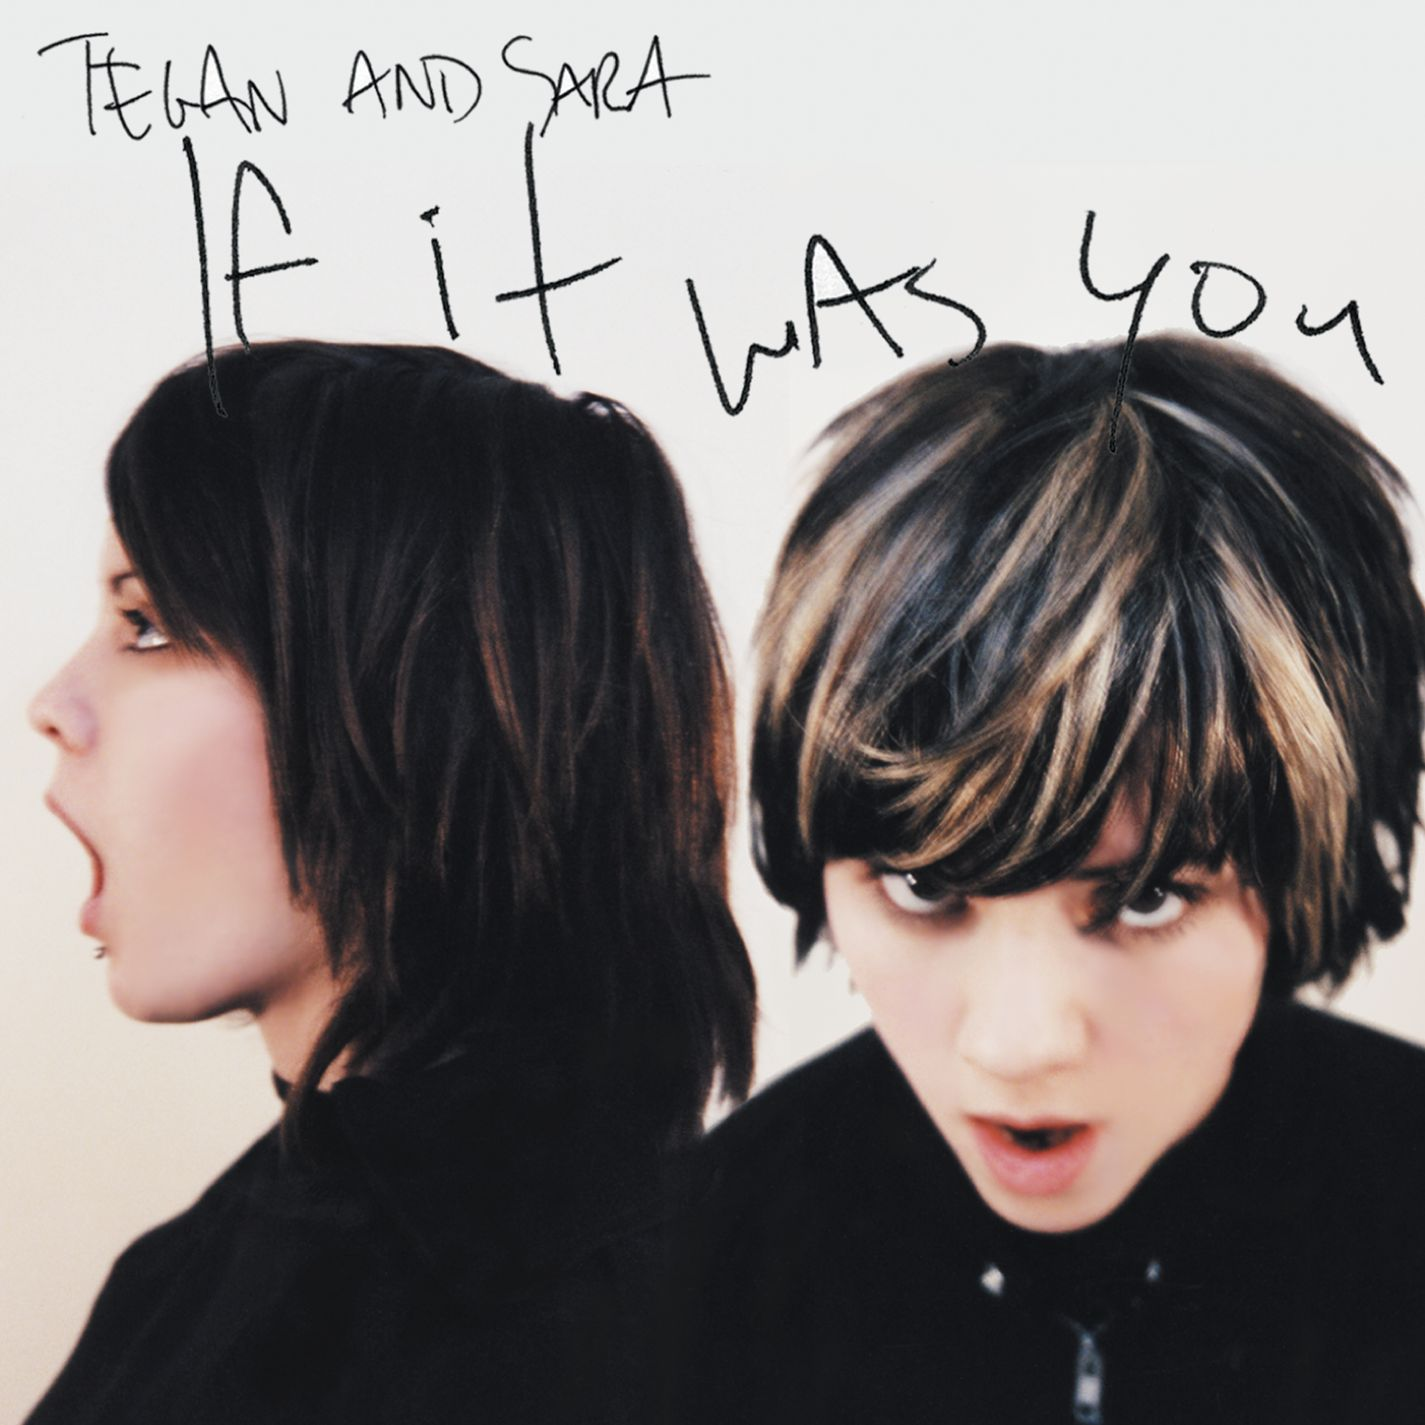 FLASHBACK FRIDAY: A Letter to Tegan and Sara